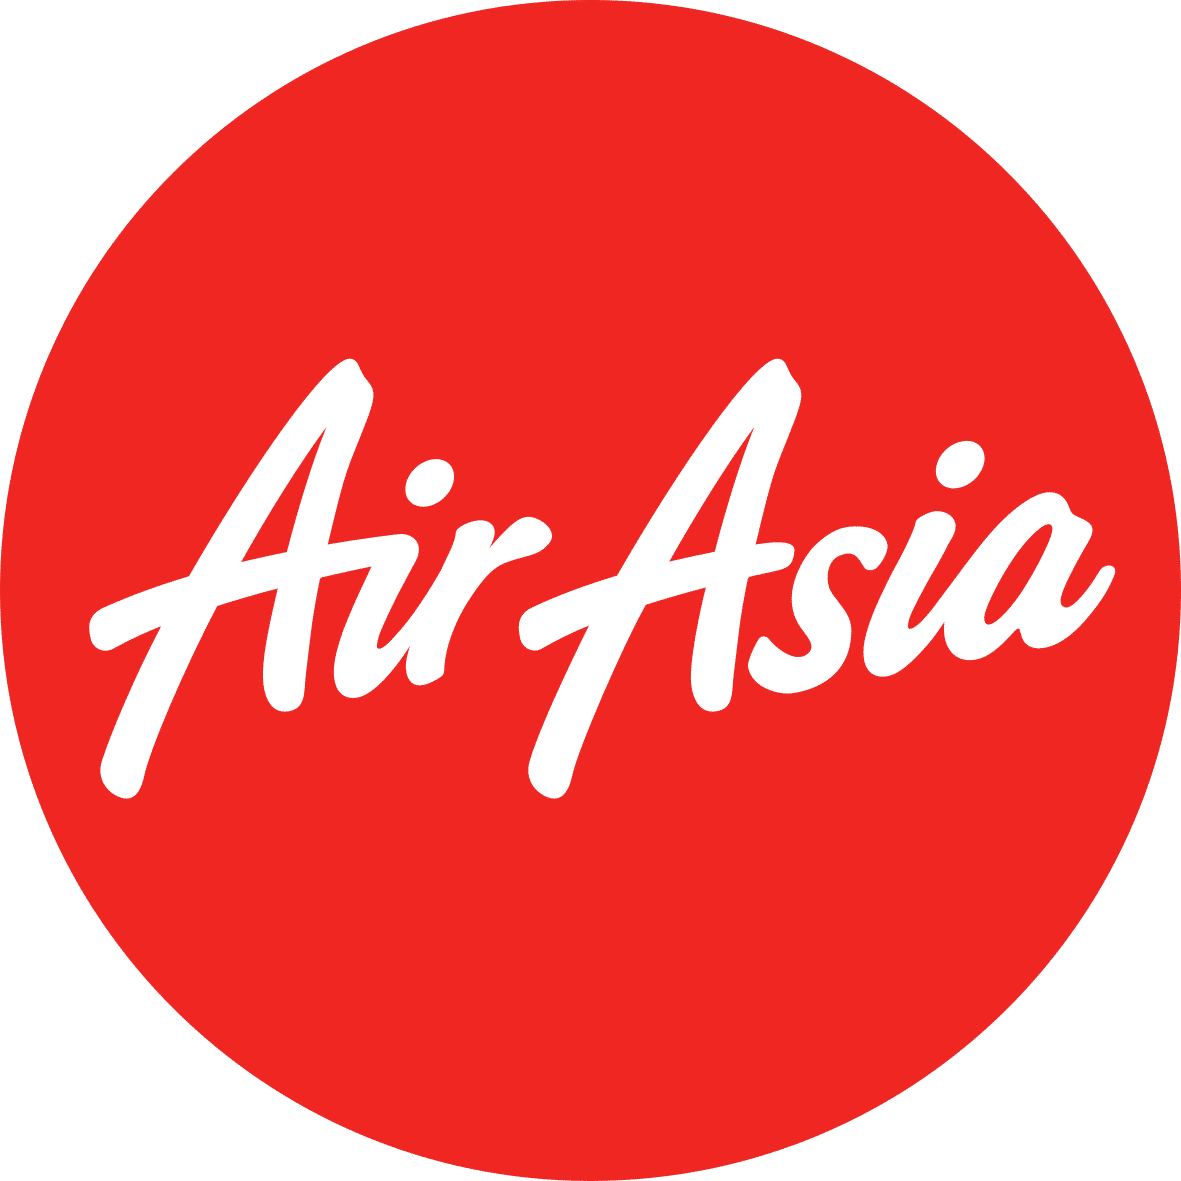 flight/airline/airasia